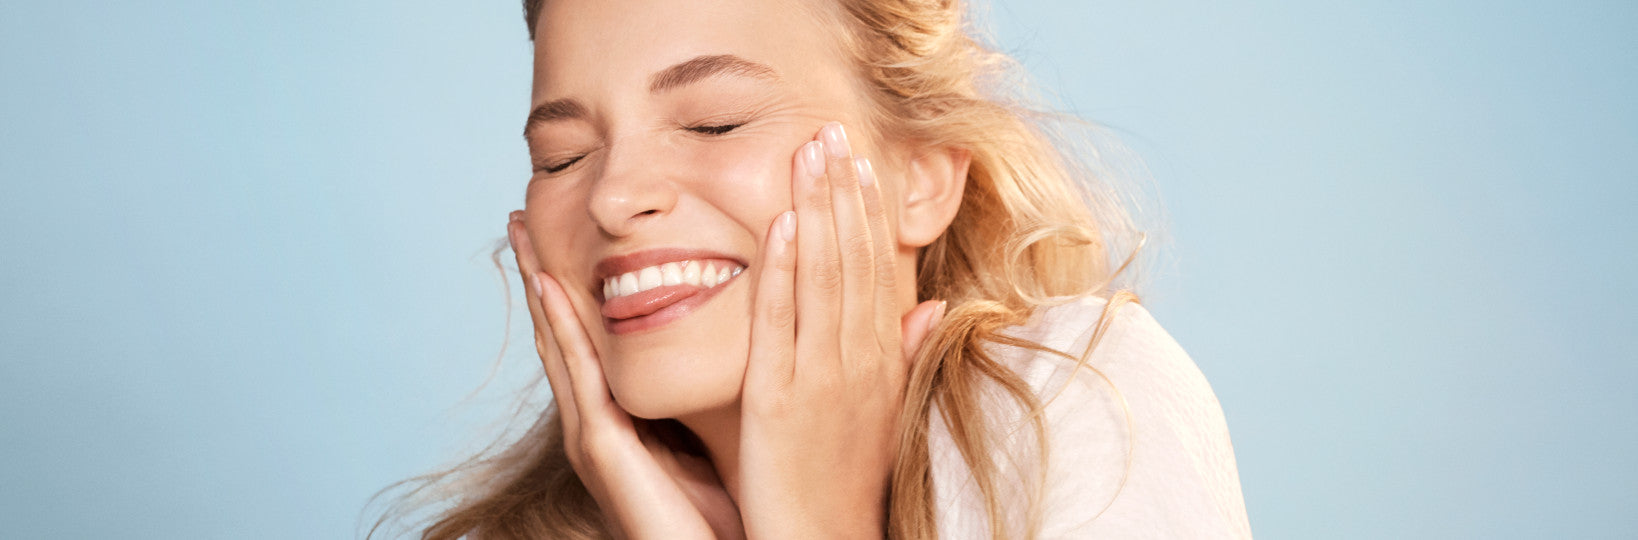 Blonde woman smiling and pressing hands to cheeks